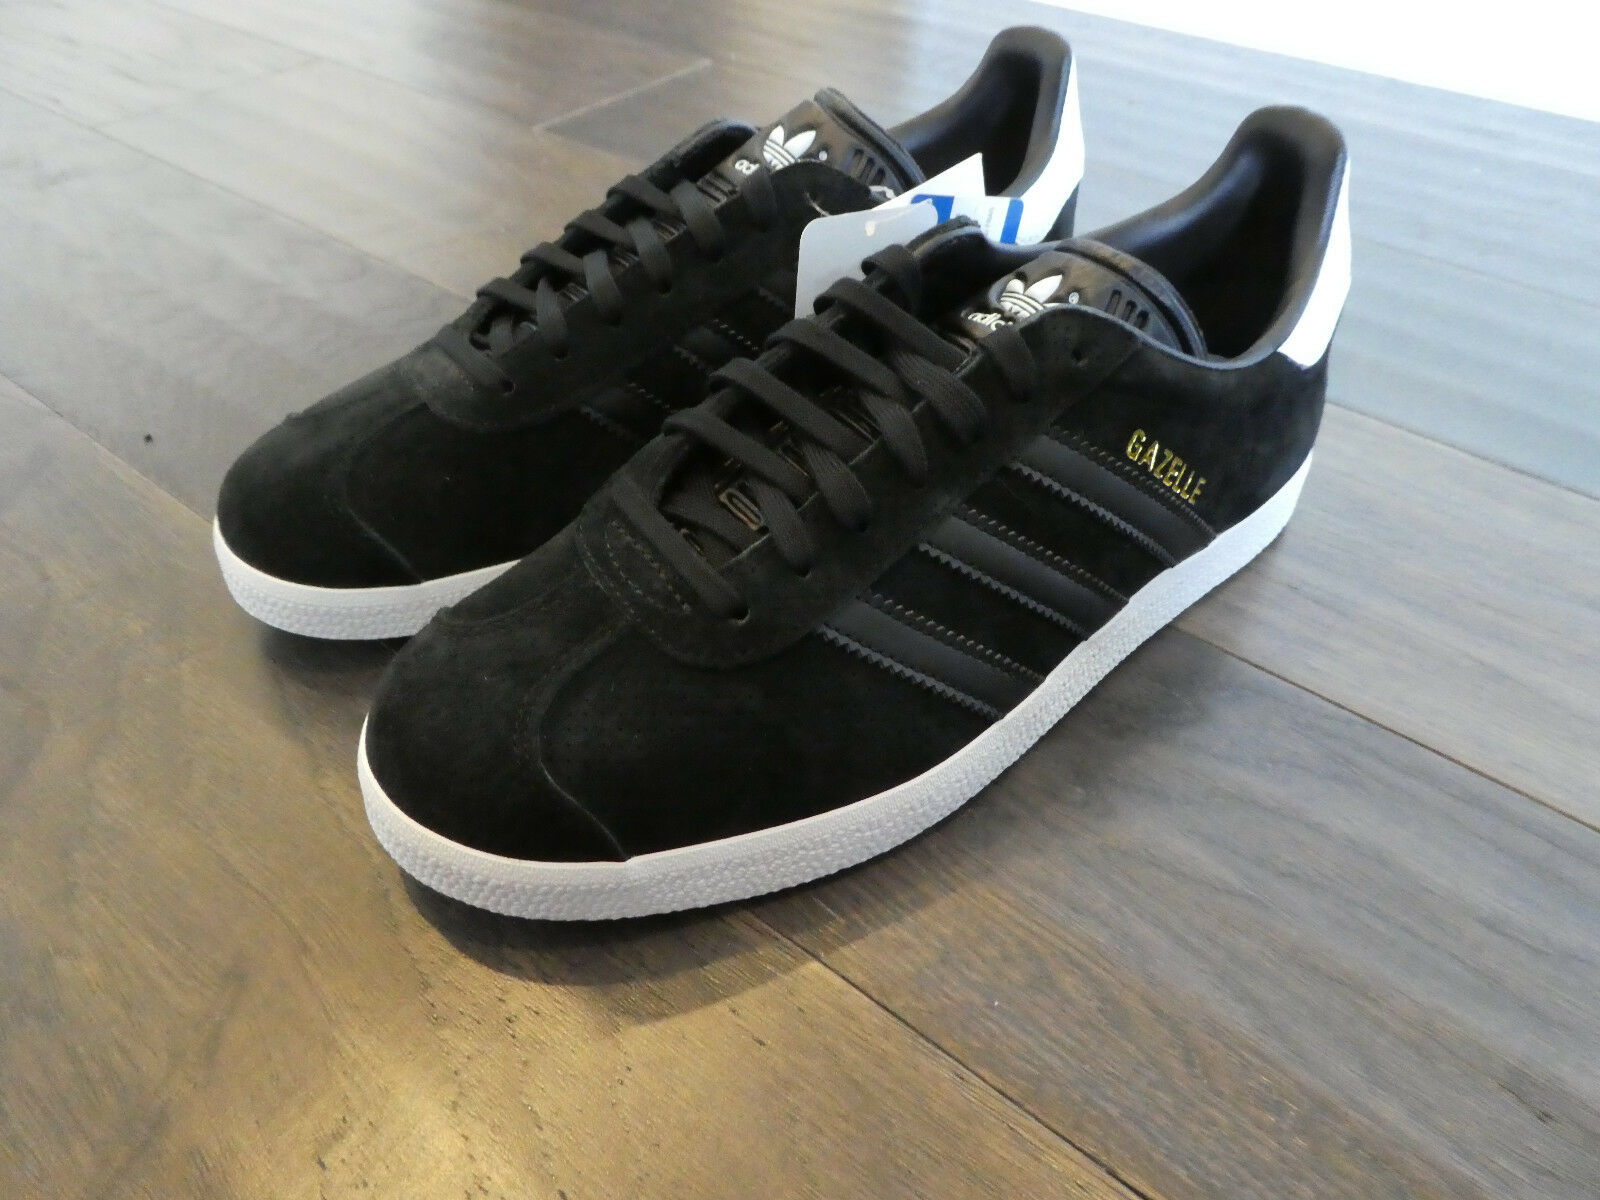 Adidas Women's Gazelle shoes sneakers new CQ2182 black white gold trainer